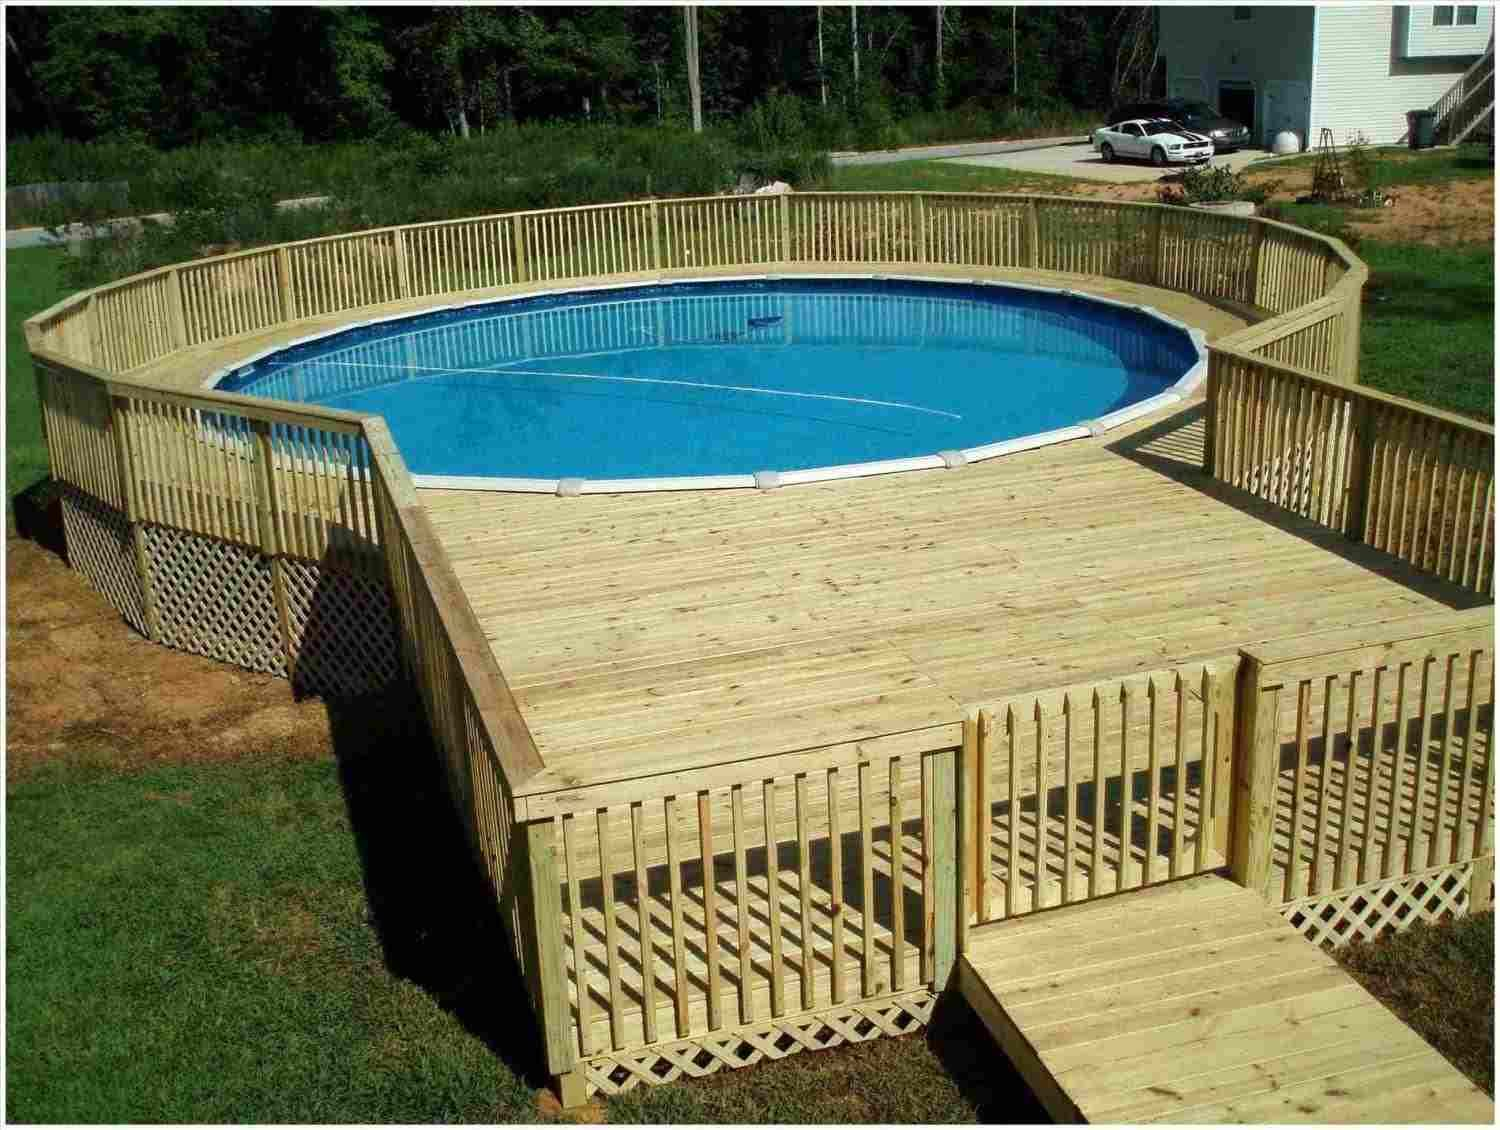 Edge Above Ground Pools Cost Ideas ... | Pool | Pool deck ...